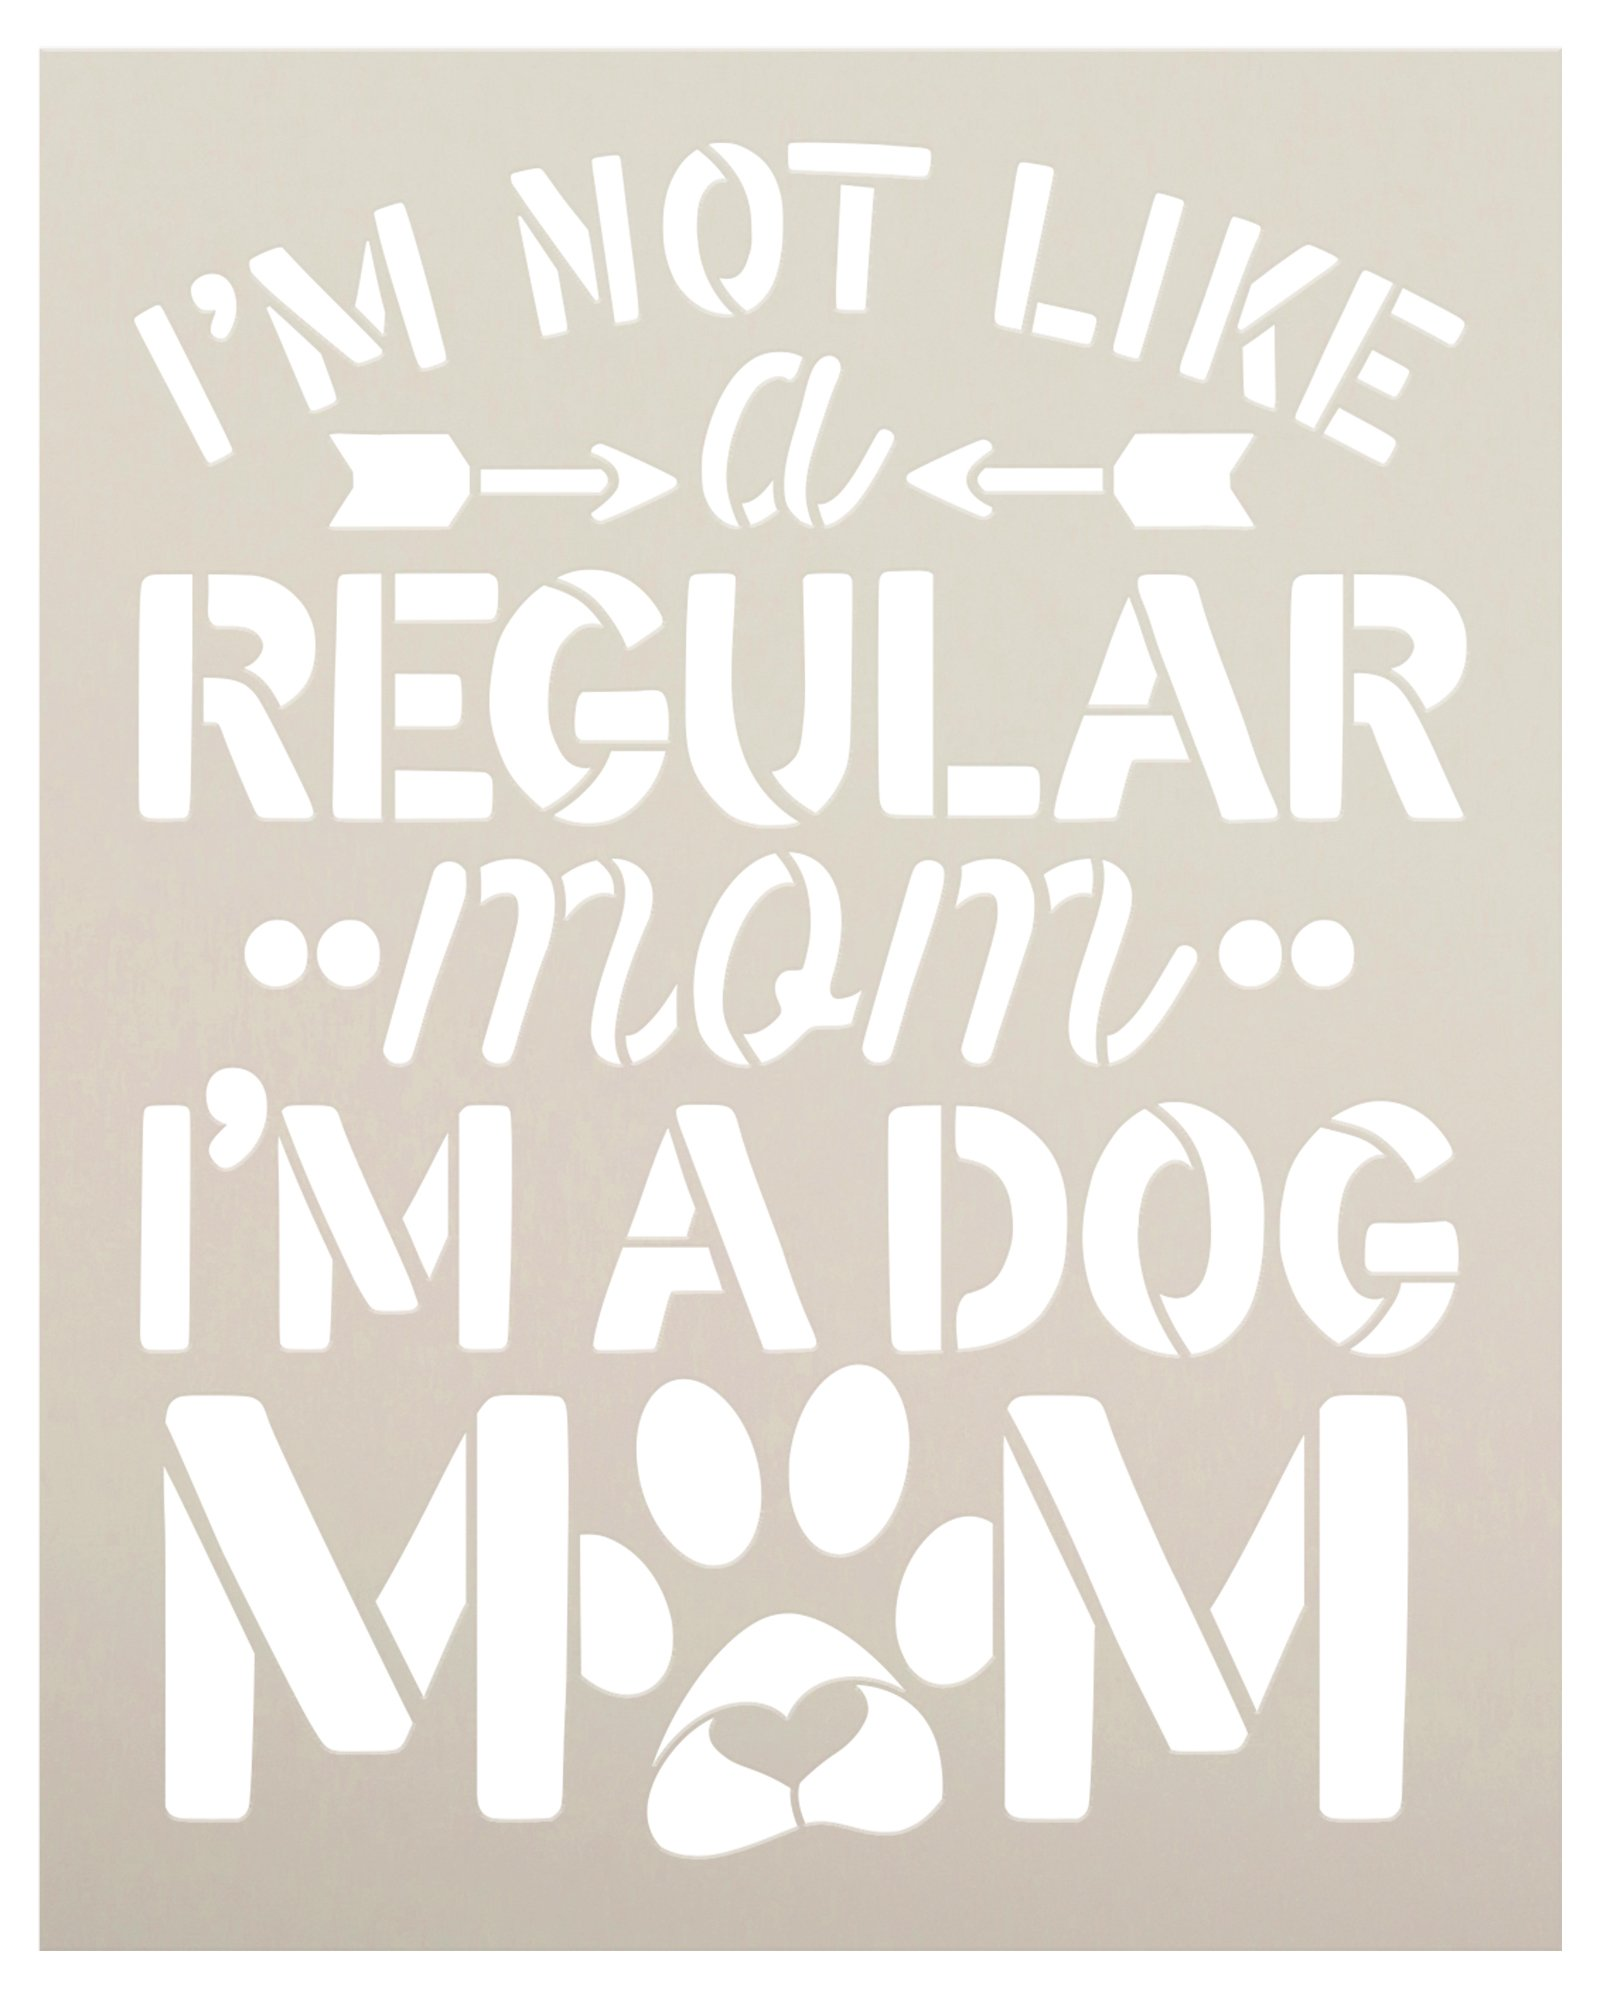 Not a Regular Mom - Dog Mom Stencil by StudioR12 | Craft DIY Pet Lover Pawprint Home Decor | Paint Wood Sign | Reusable Mylar Template | Select Size